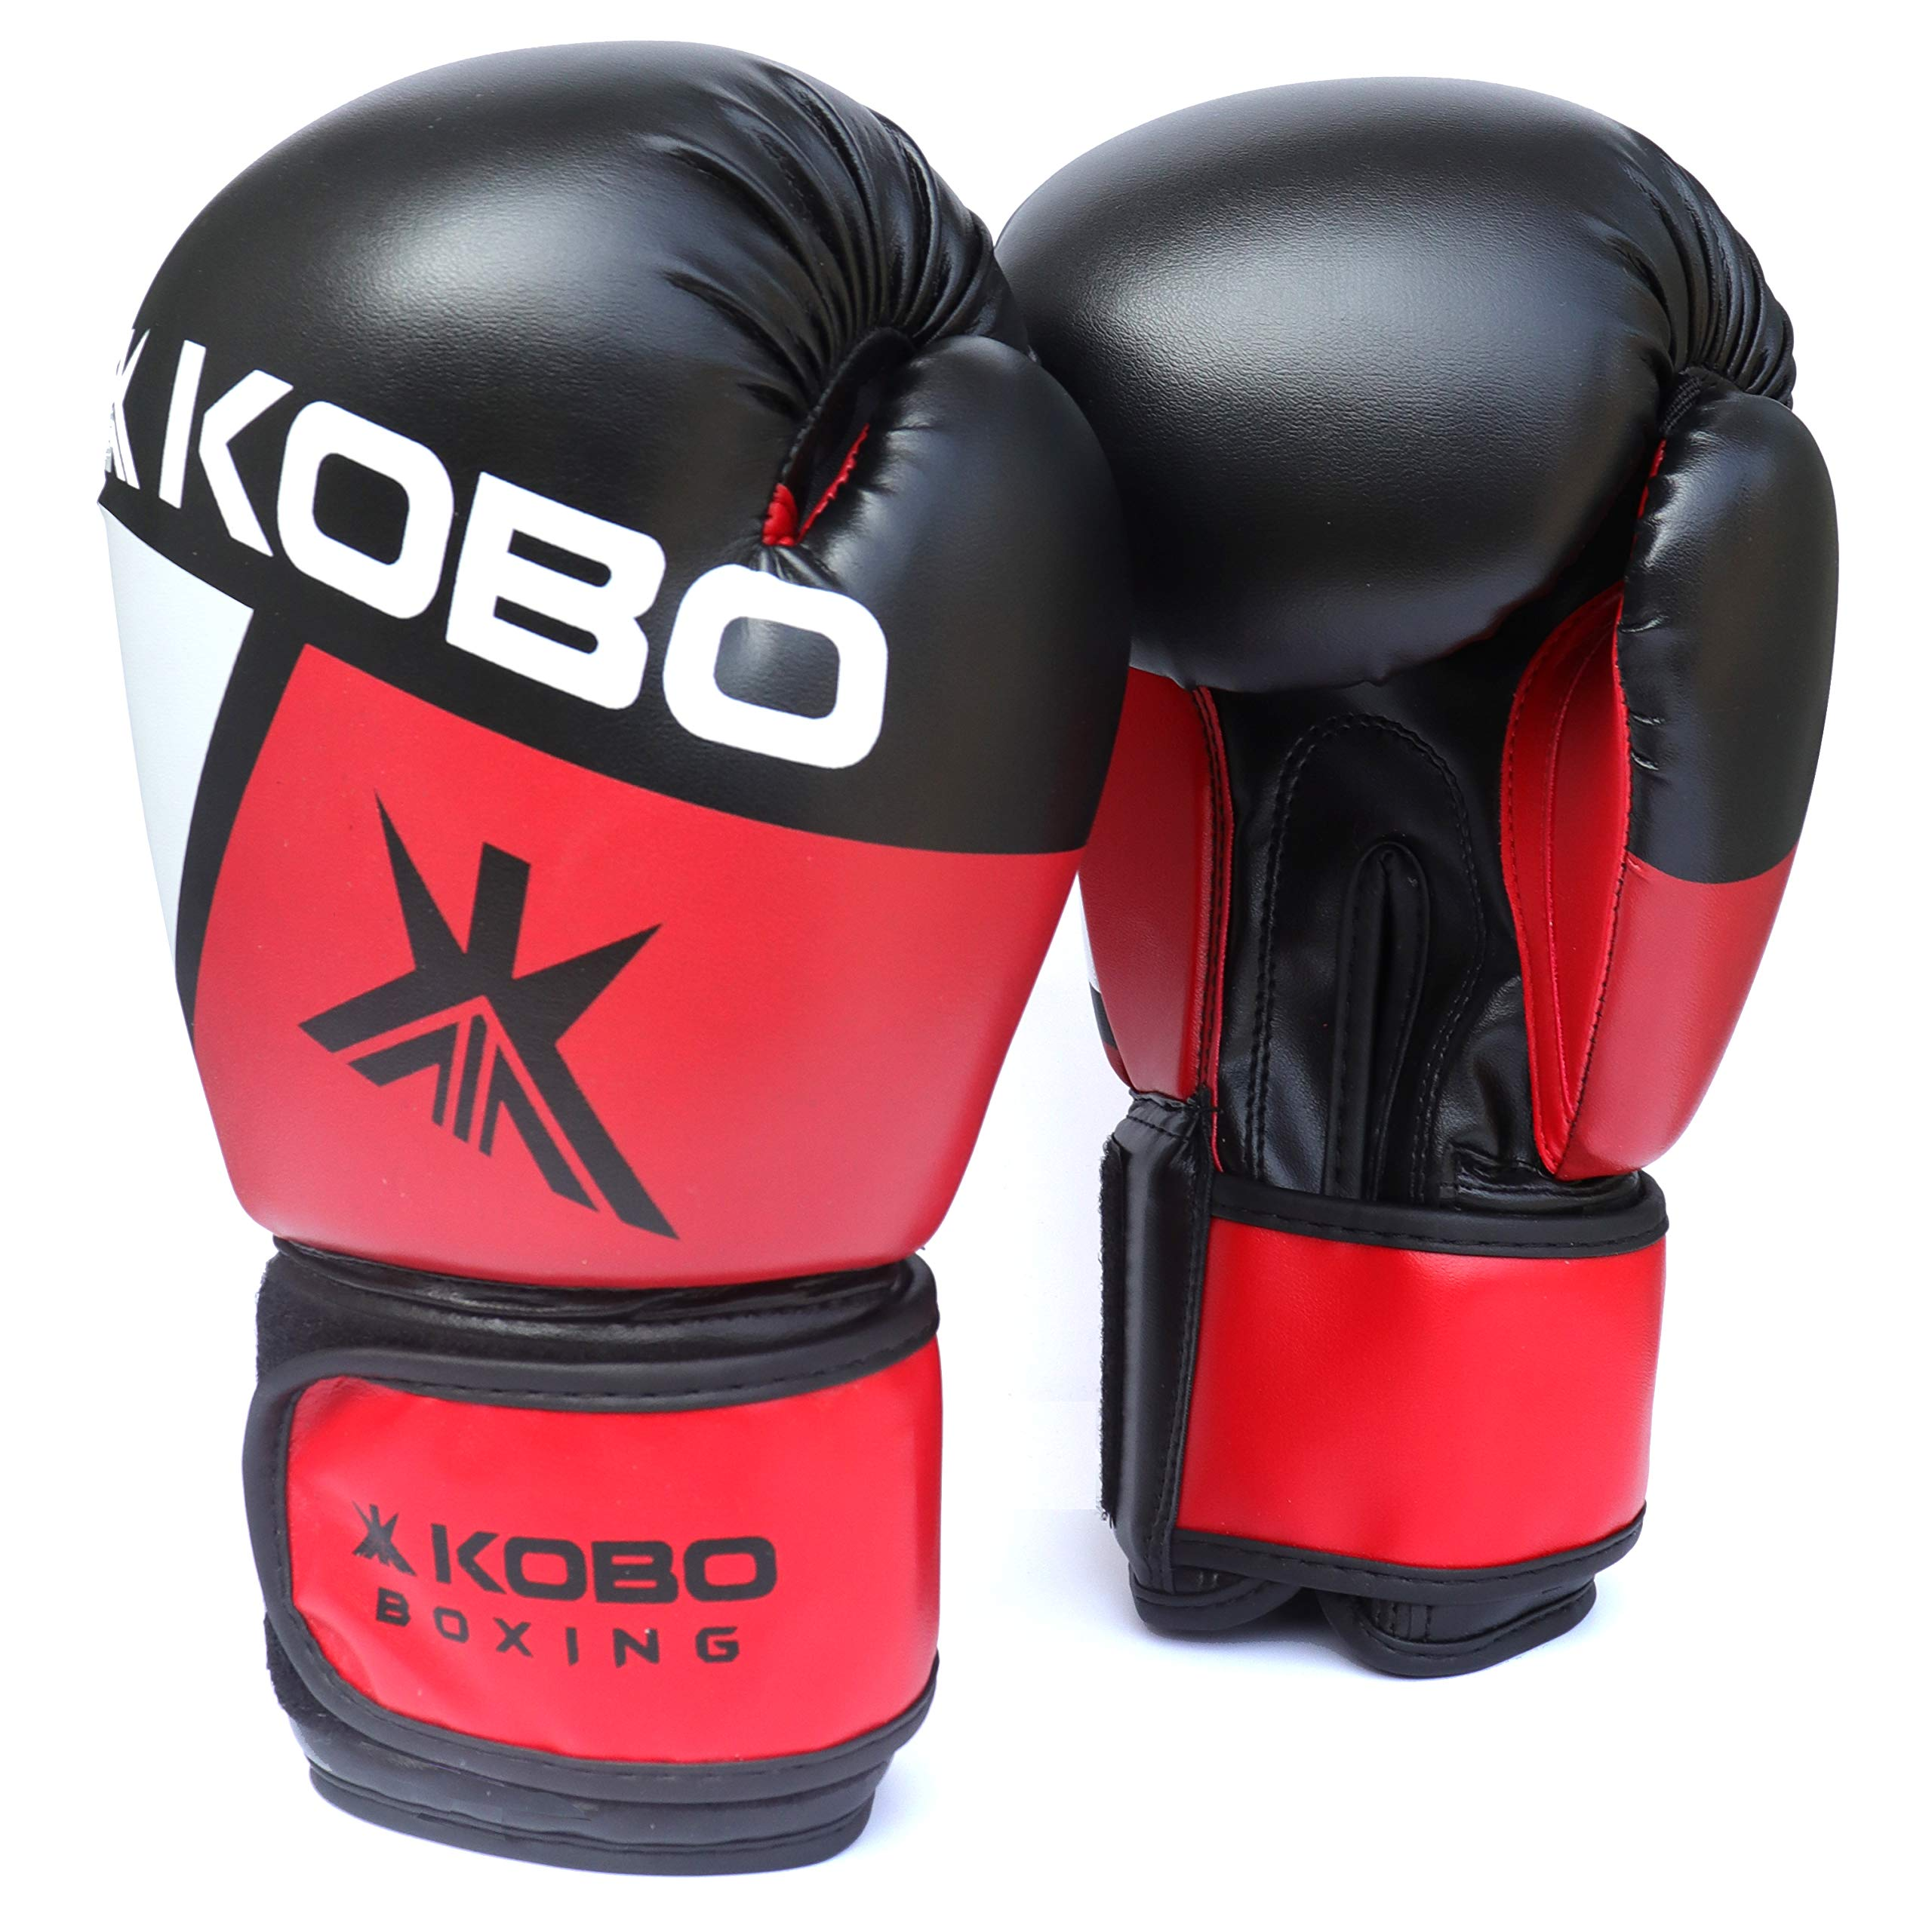 1 Pair Professional Adult Boxing Gloves Sparring Glove Punch Bag Training Mitts